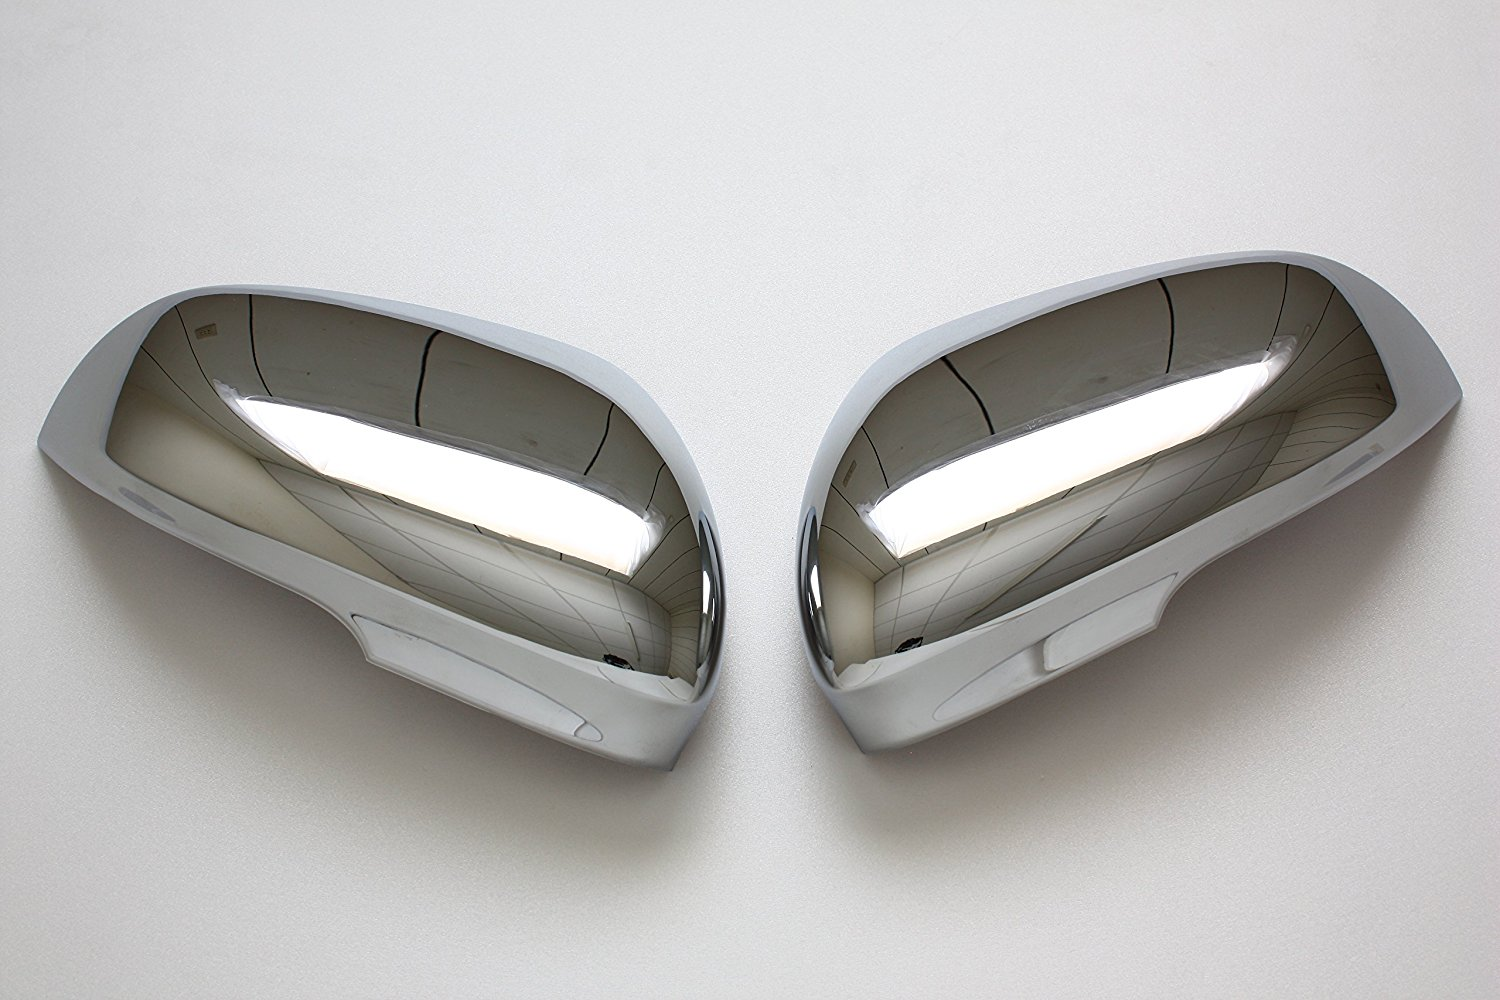 B2 2010 2011 Jaguar XF XK XFR XKR Chrome Door Mirror Covers